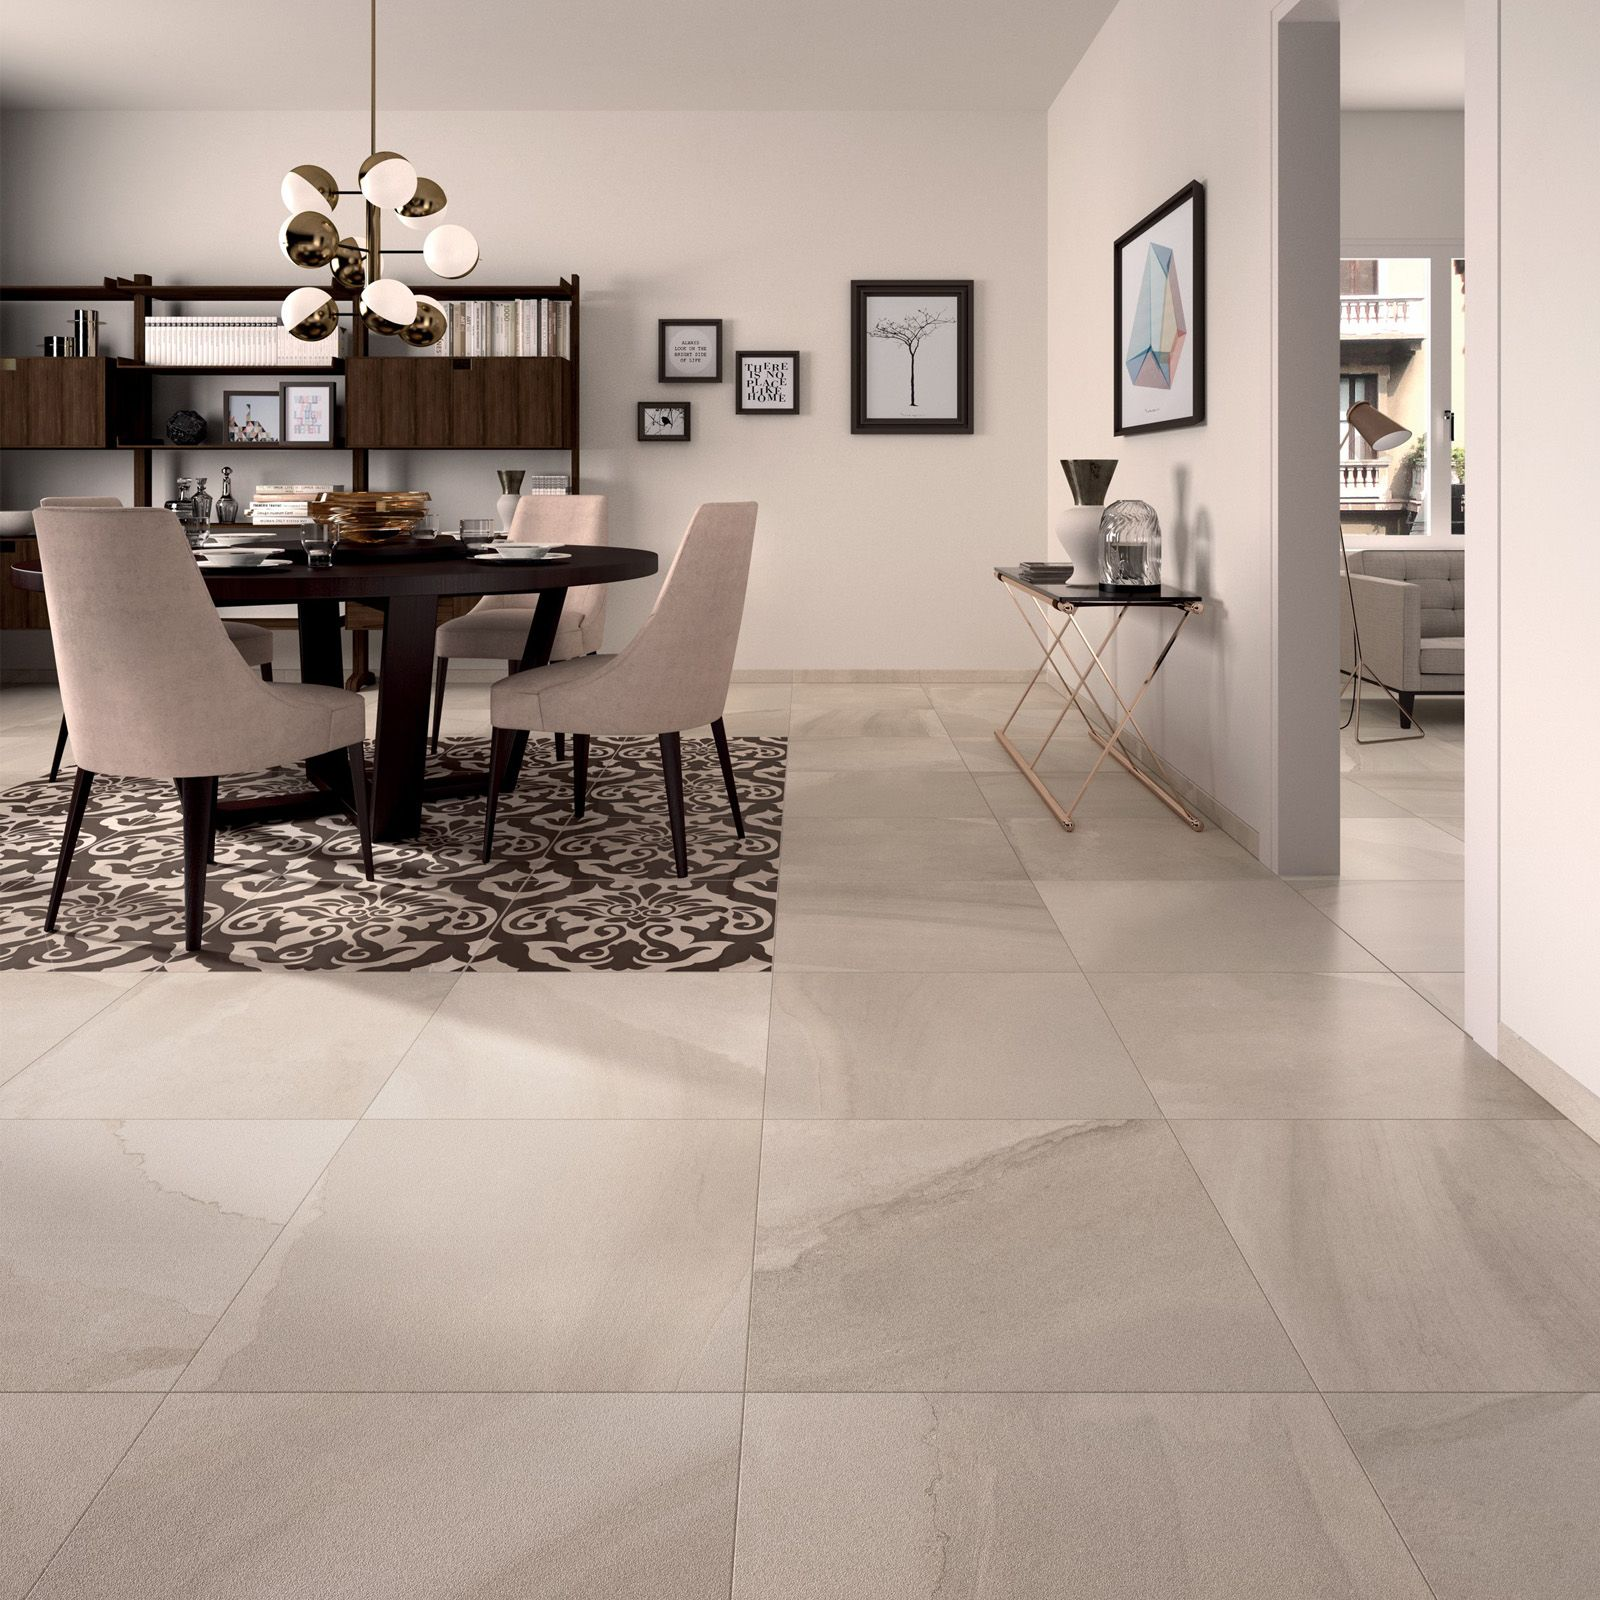 Modern Elegant Dining Space Idea Fluido Floor Tile Collection From Abk Dining Room Floor Dining Room Design Tile Floor